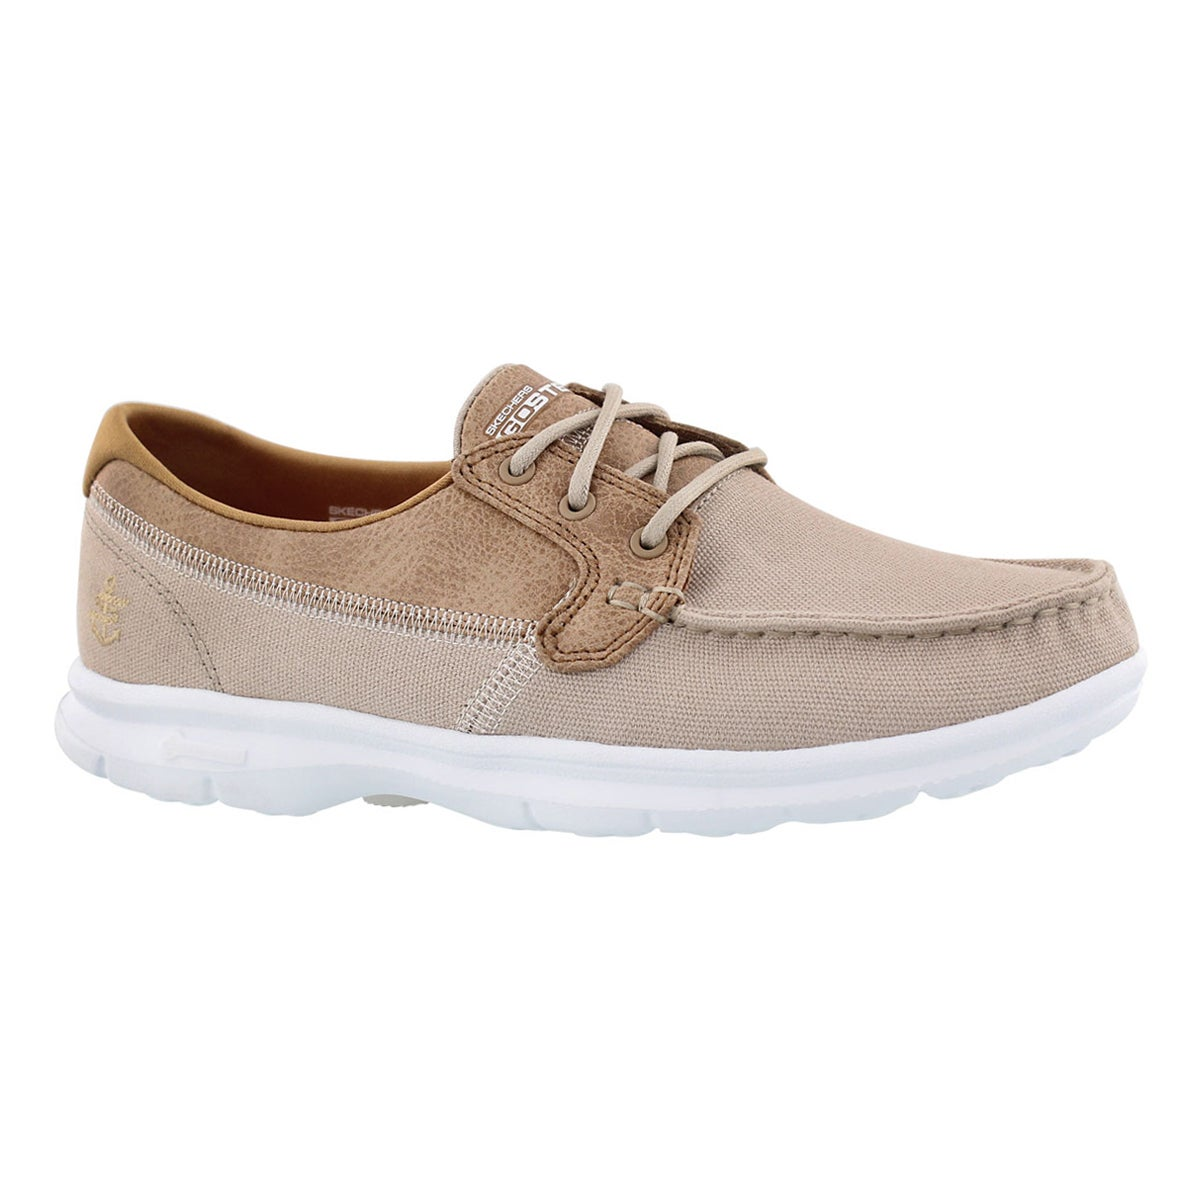 Women's GOstep SEASHORE natural boat shoe